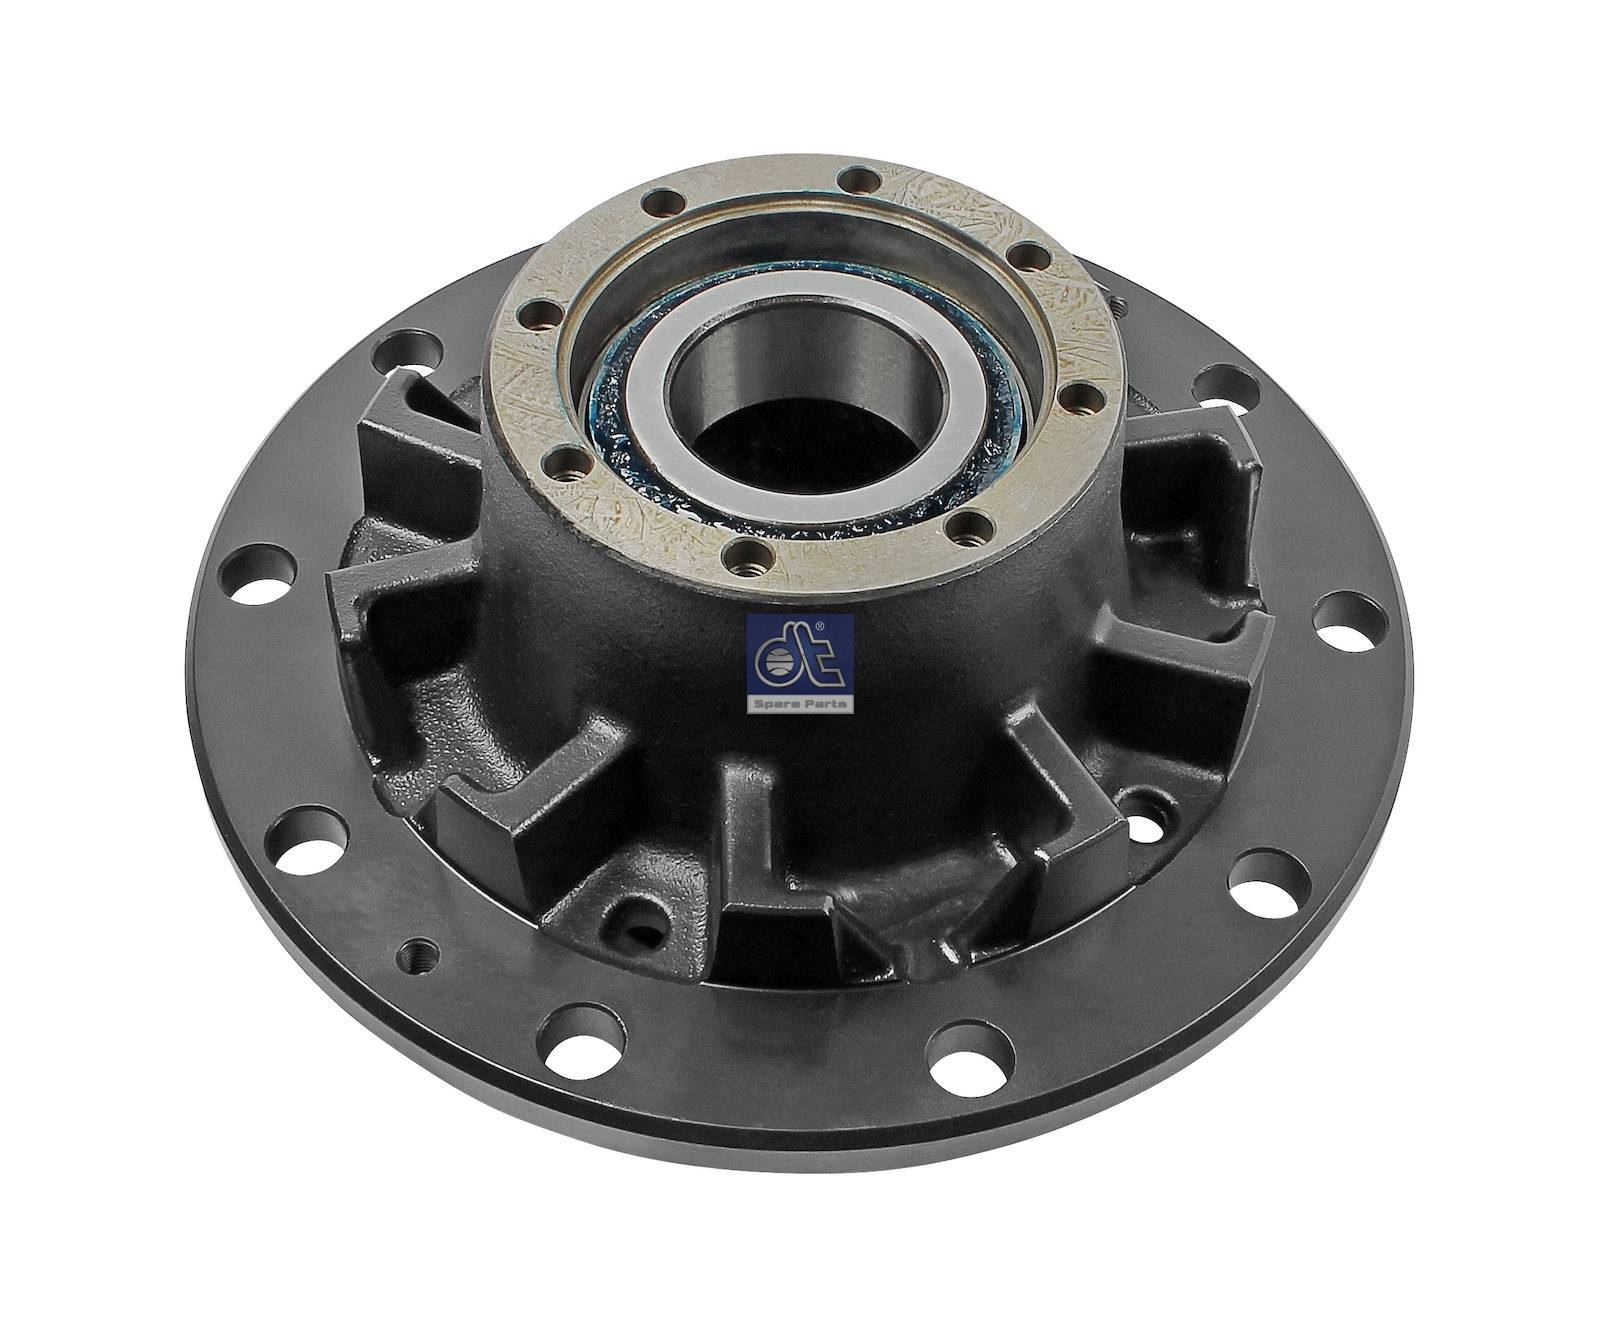 Wheel hub, with bearing